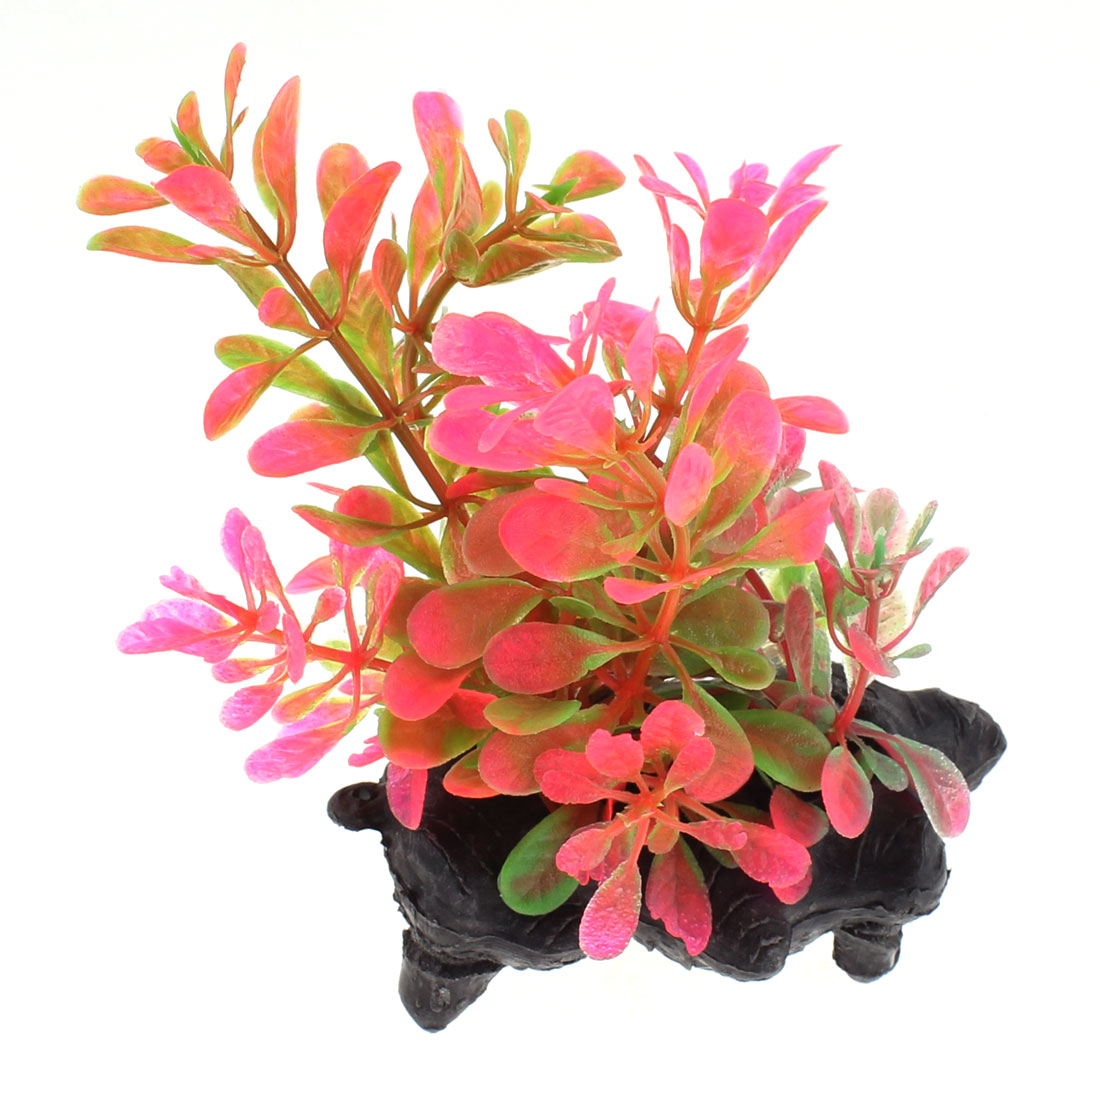 Aquarium Artificial Plastic Water Grass Plant Adornment